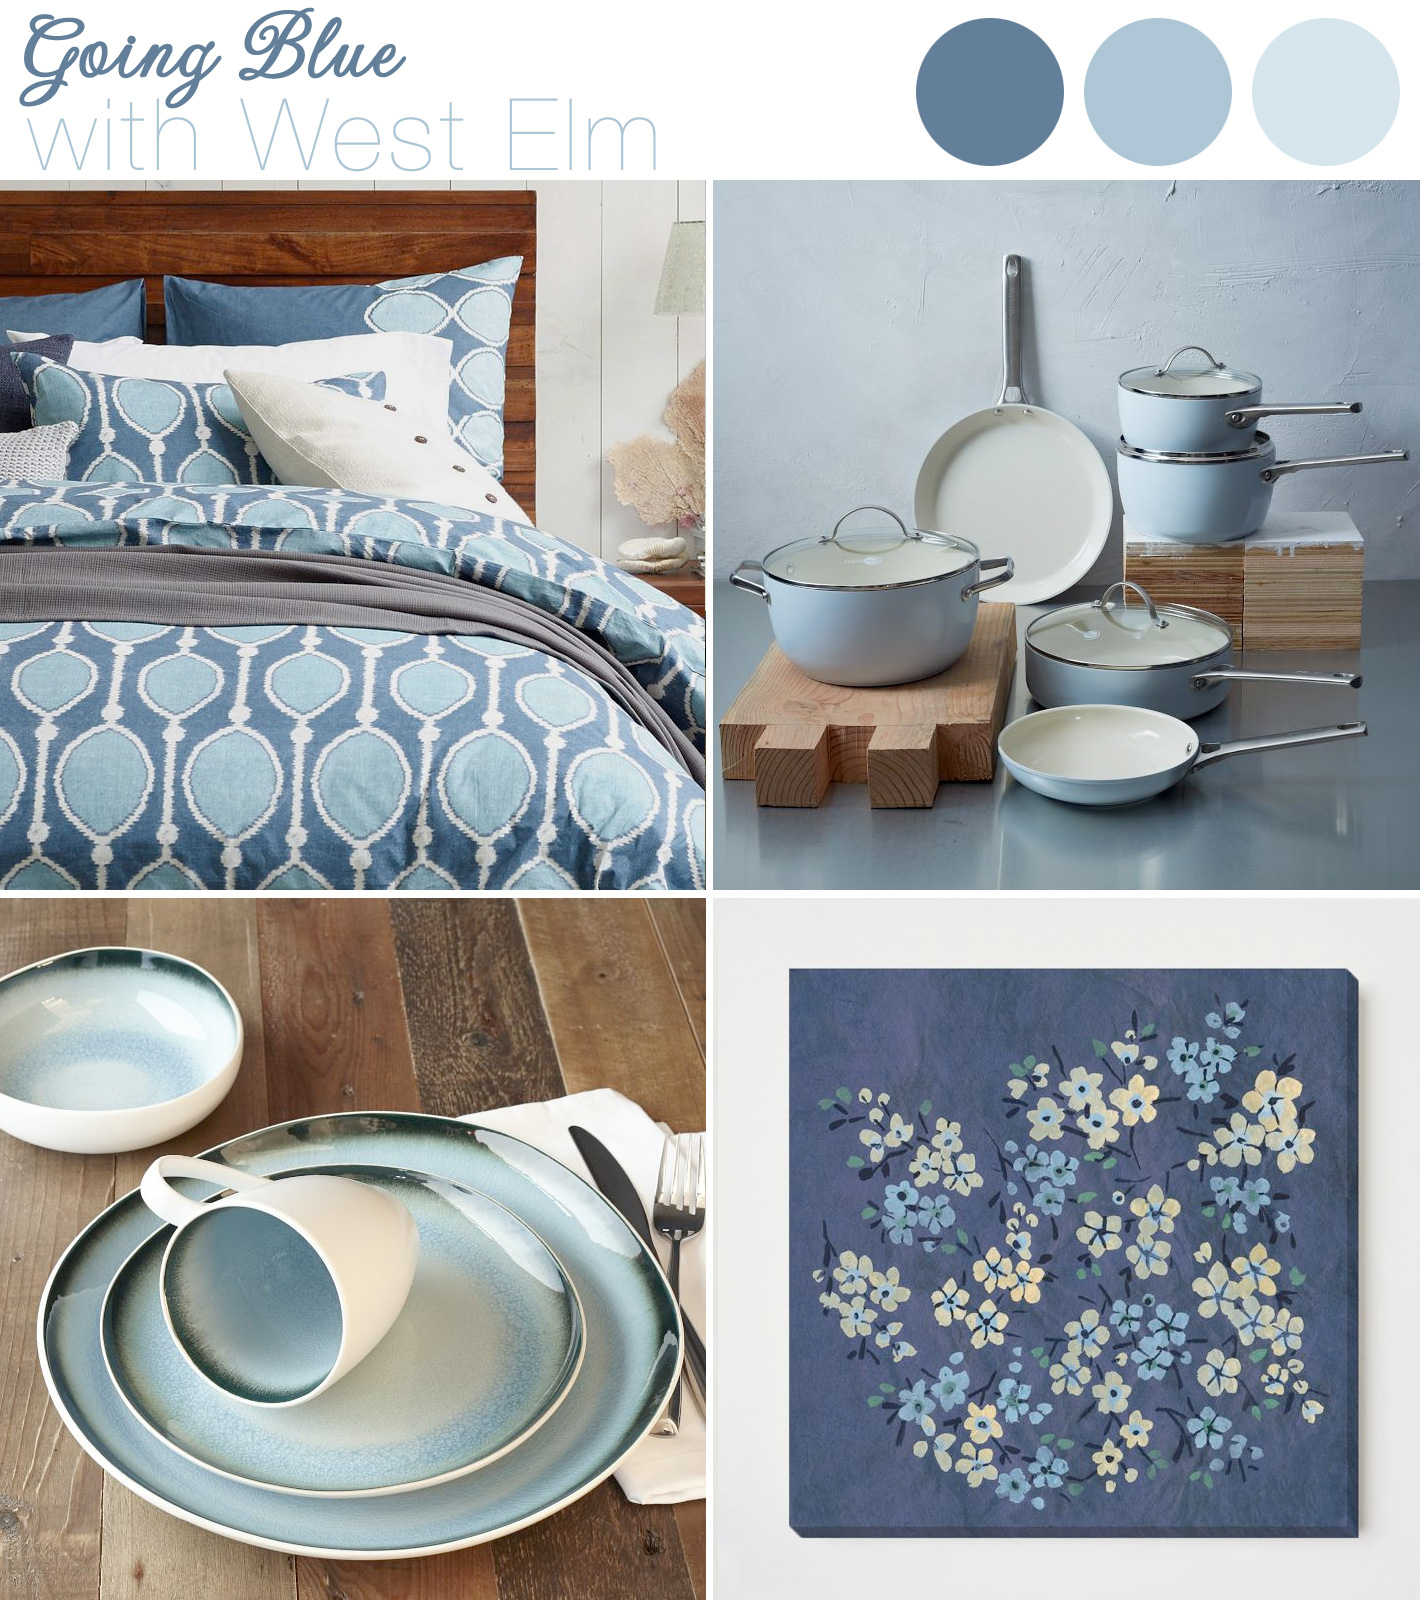 West Elm - creating your #newlywed home with their new #wedding + #gift #registry in blue colors